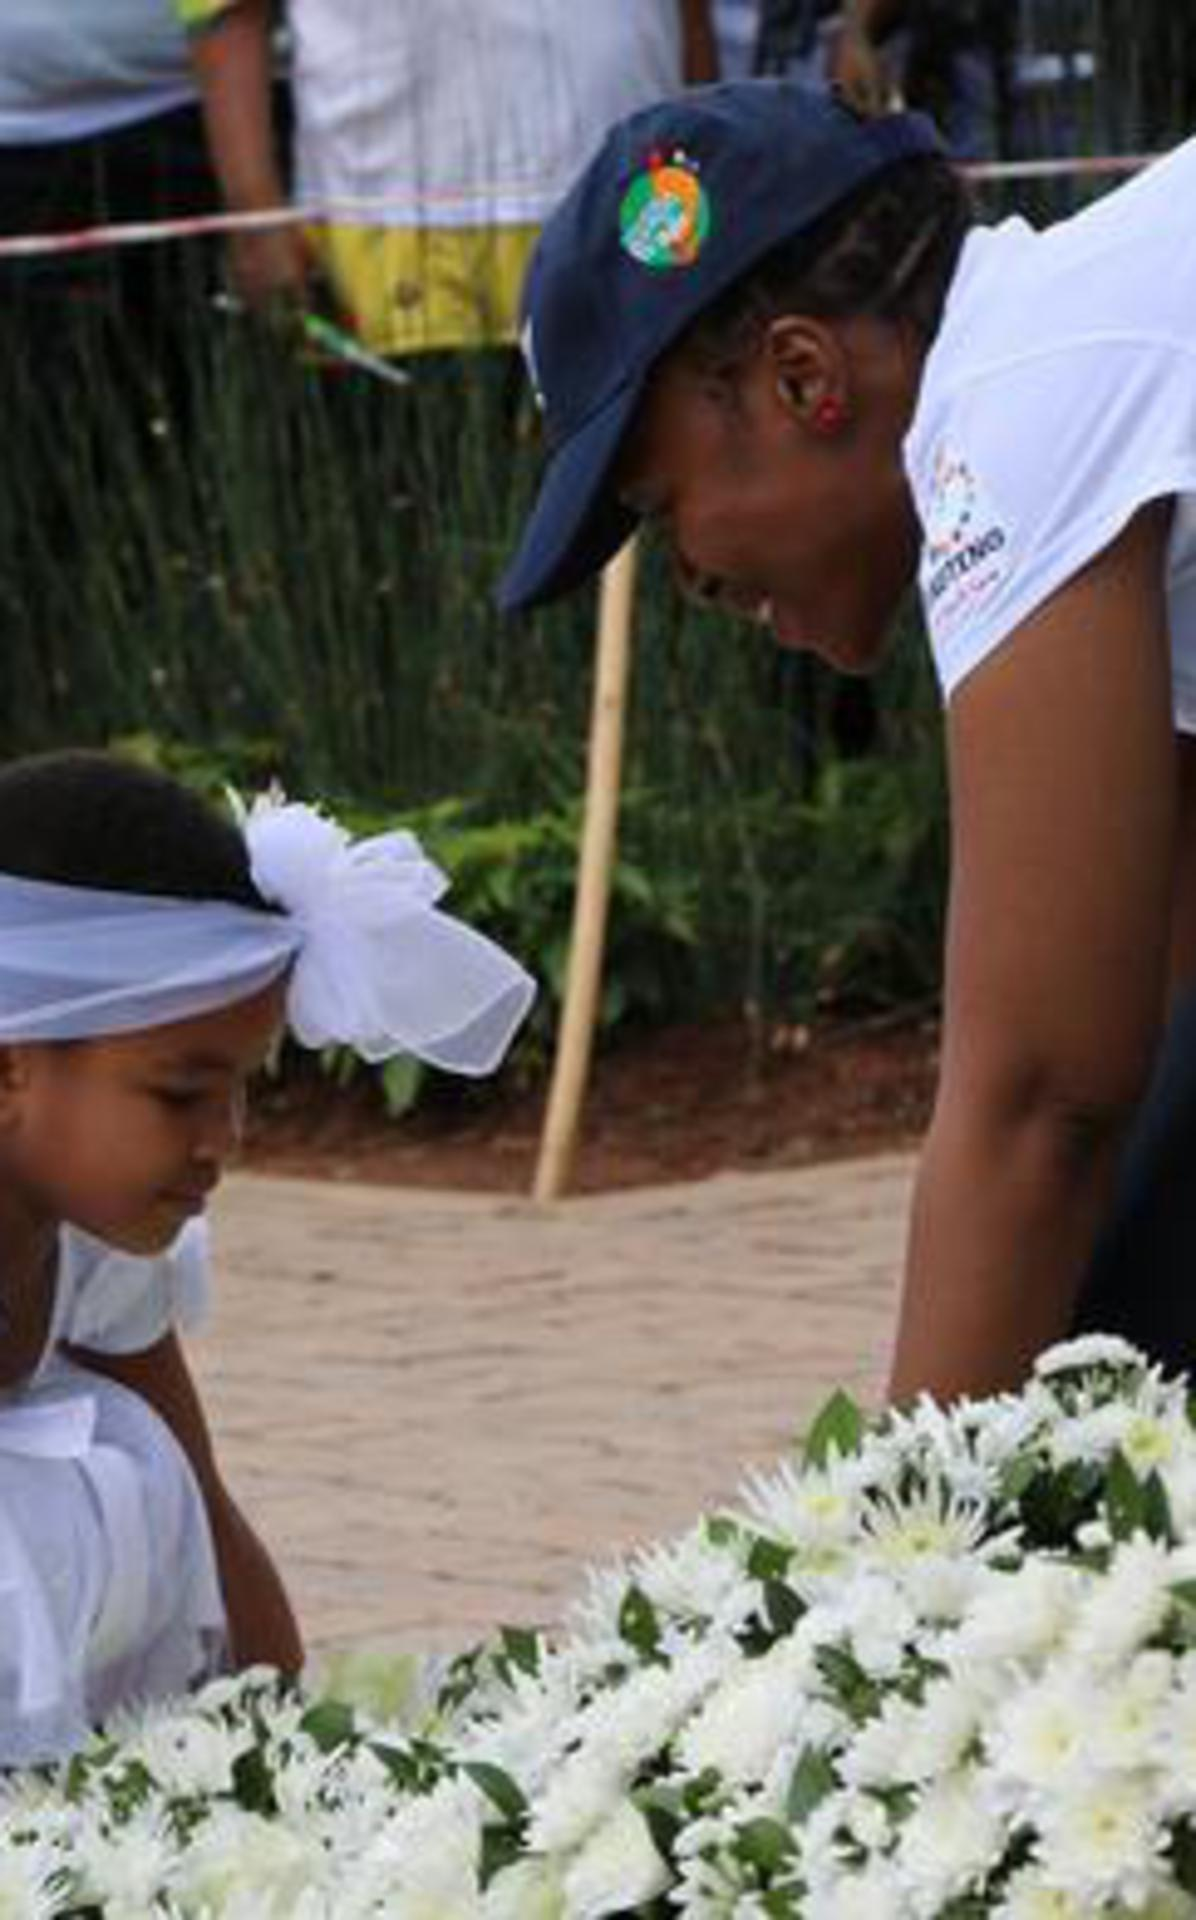 Primary girl placing a wreath